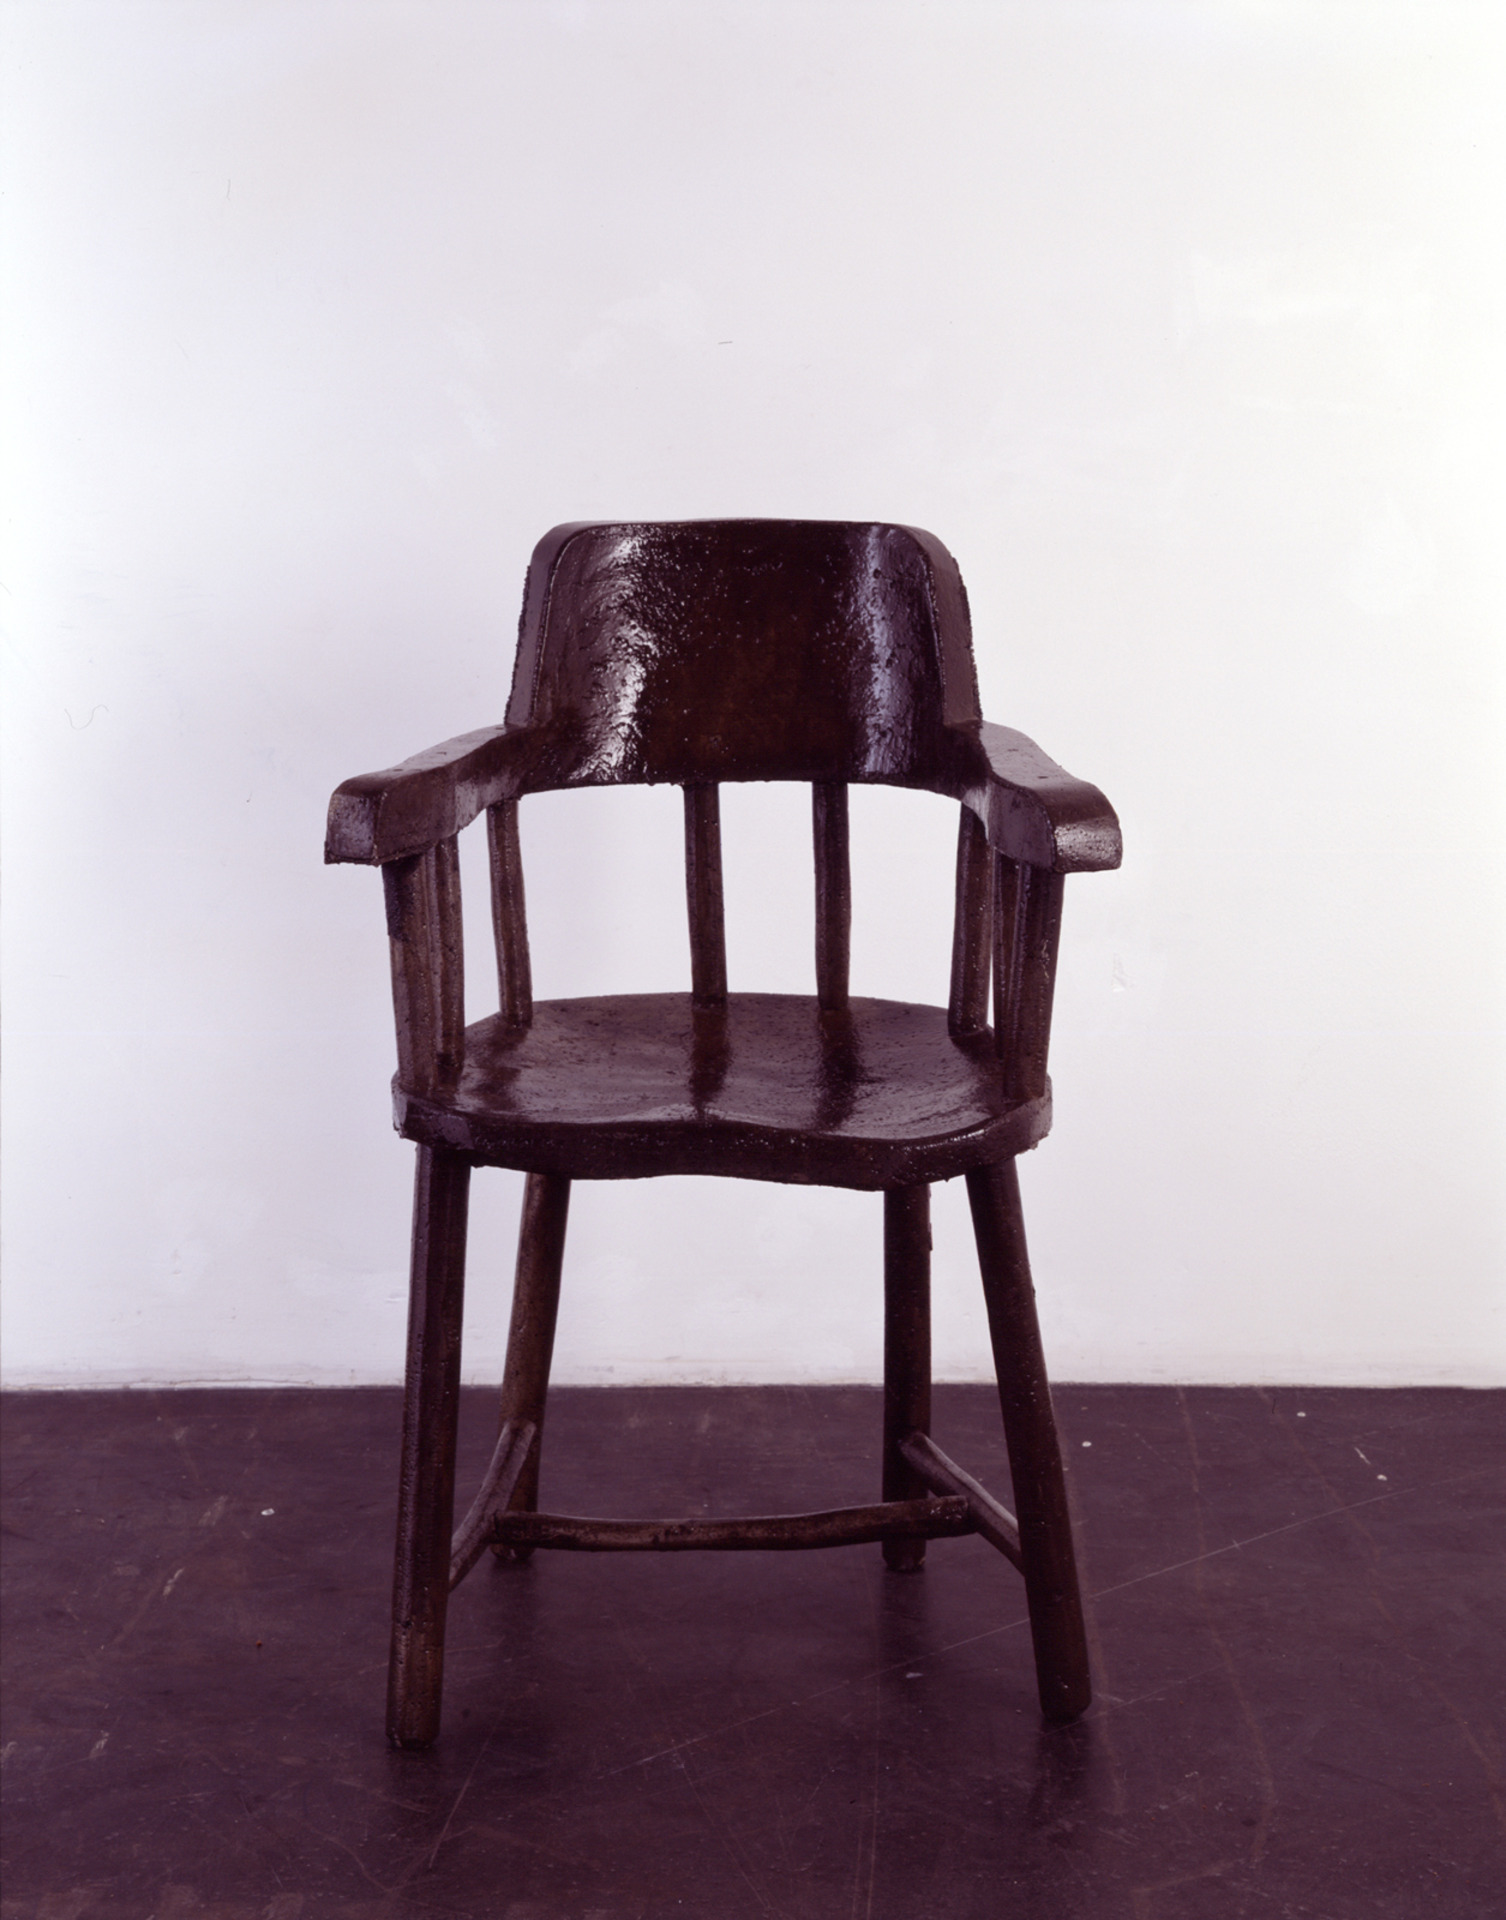 Untitled (Chair for Ugo)